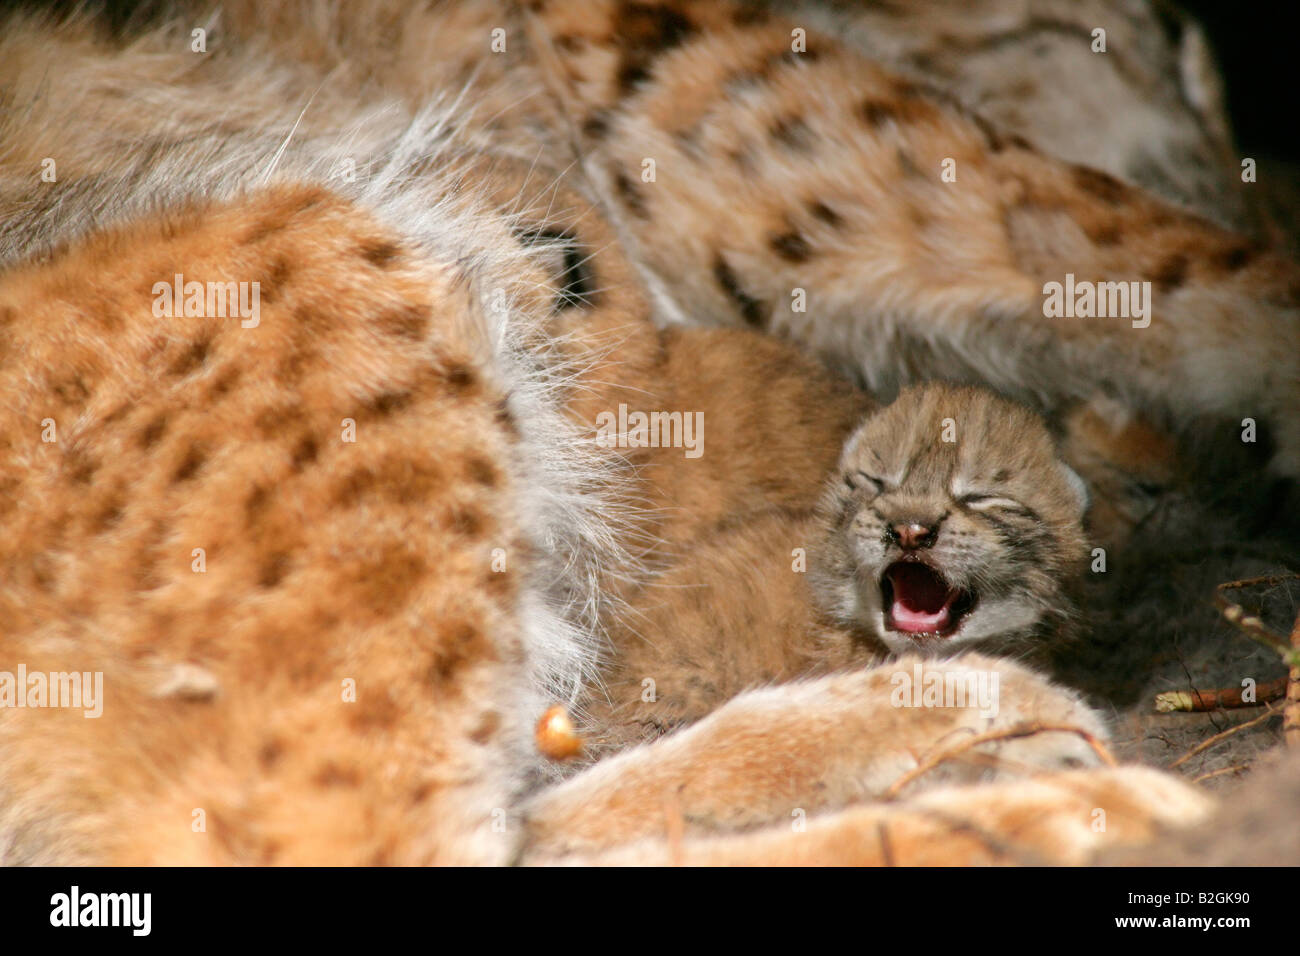 eurasian lynx dam catkin mother motherly love close up Lynx lynx cuddling bavaria germany Stock Photo